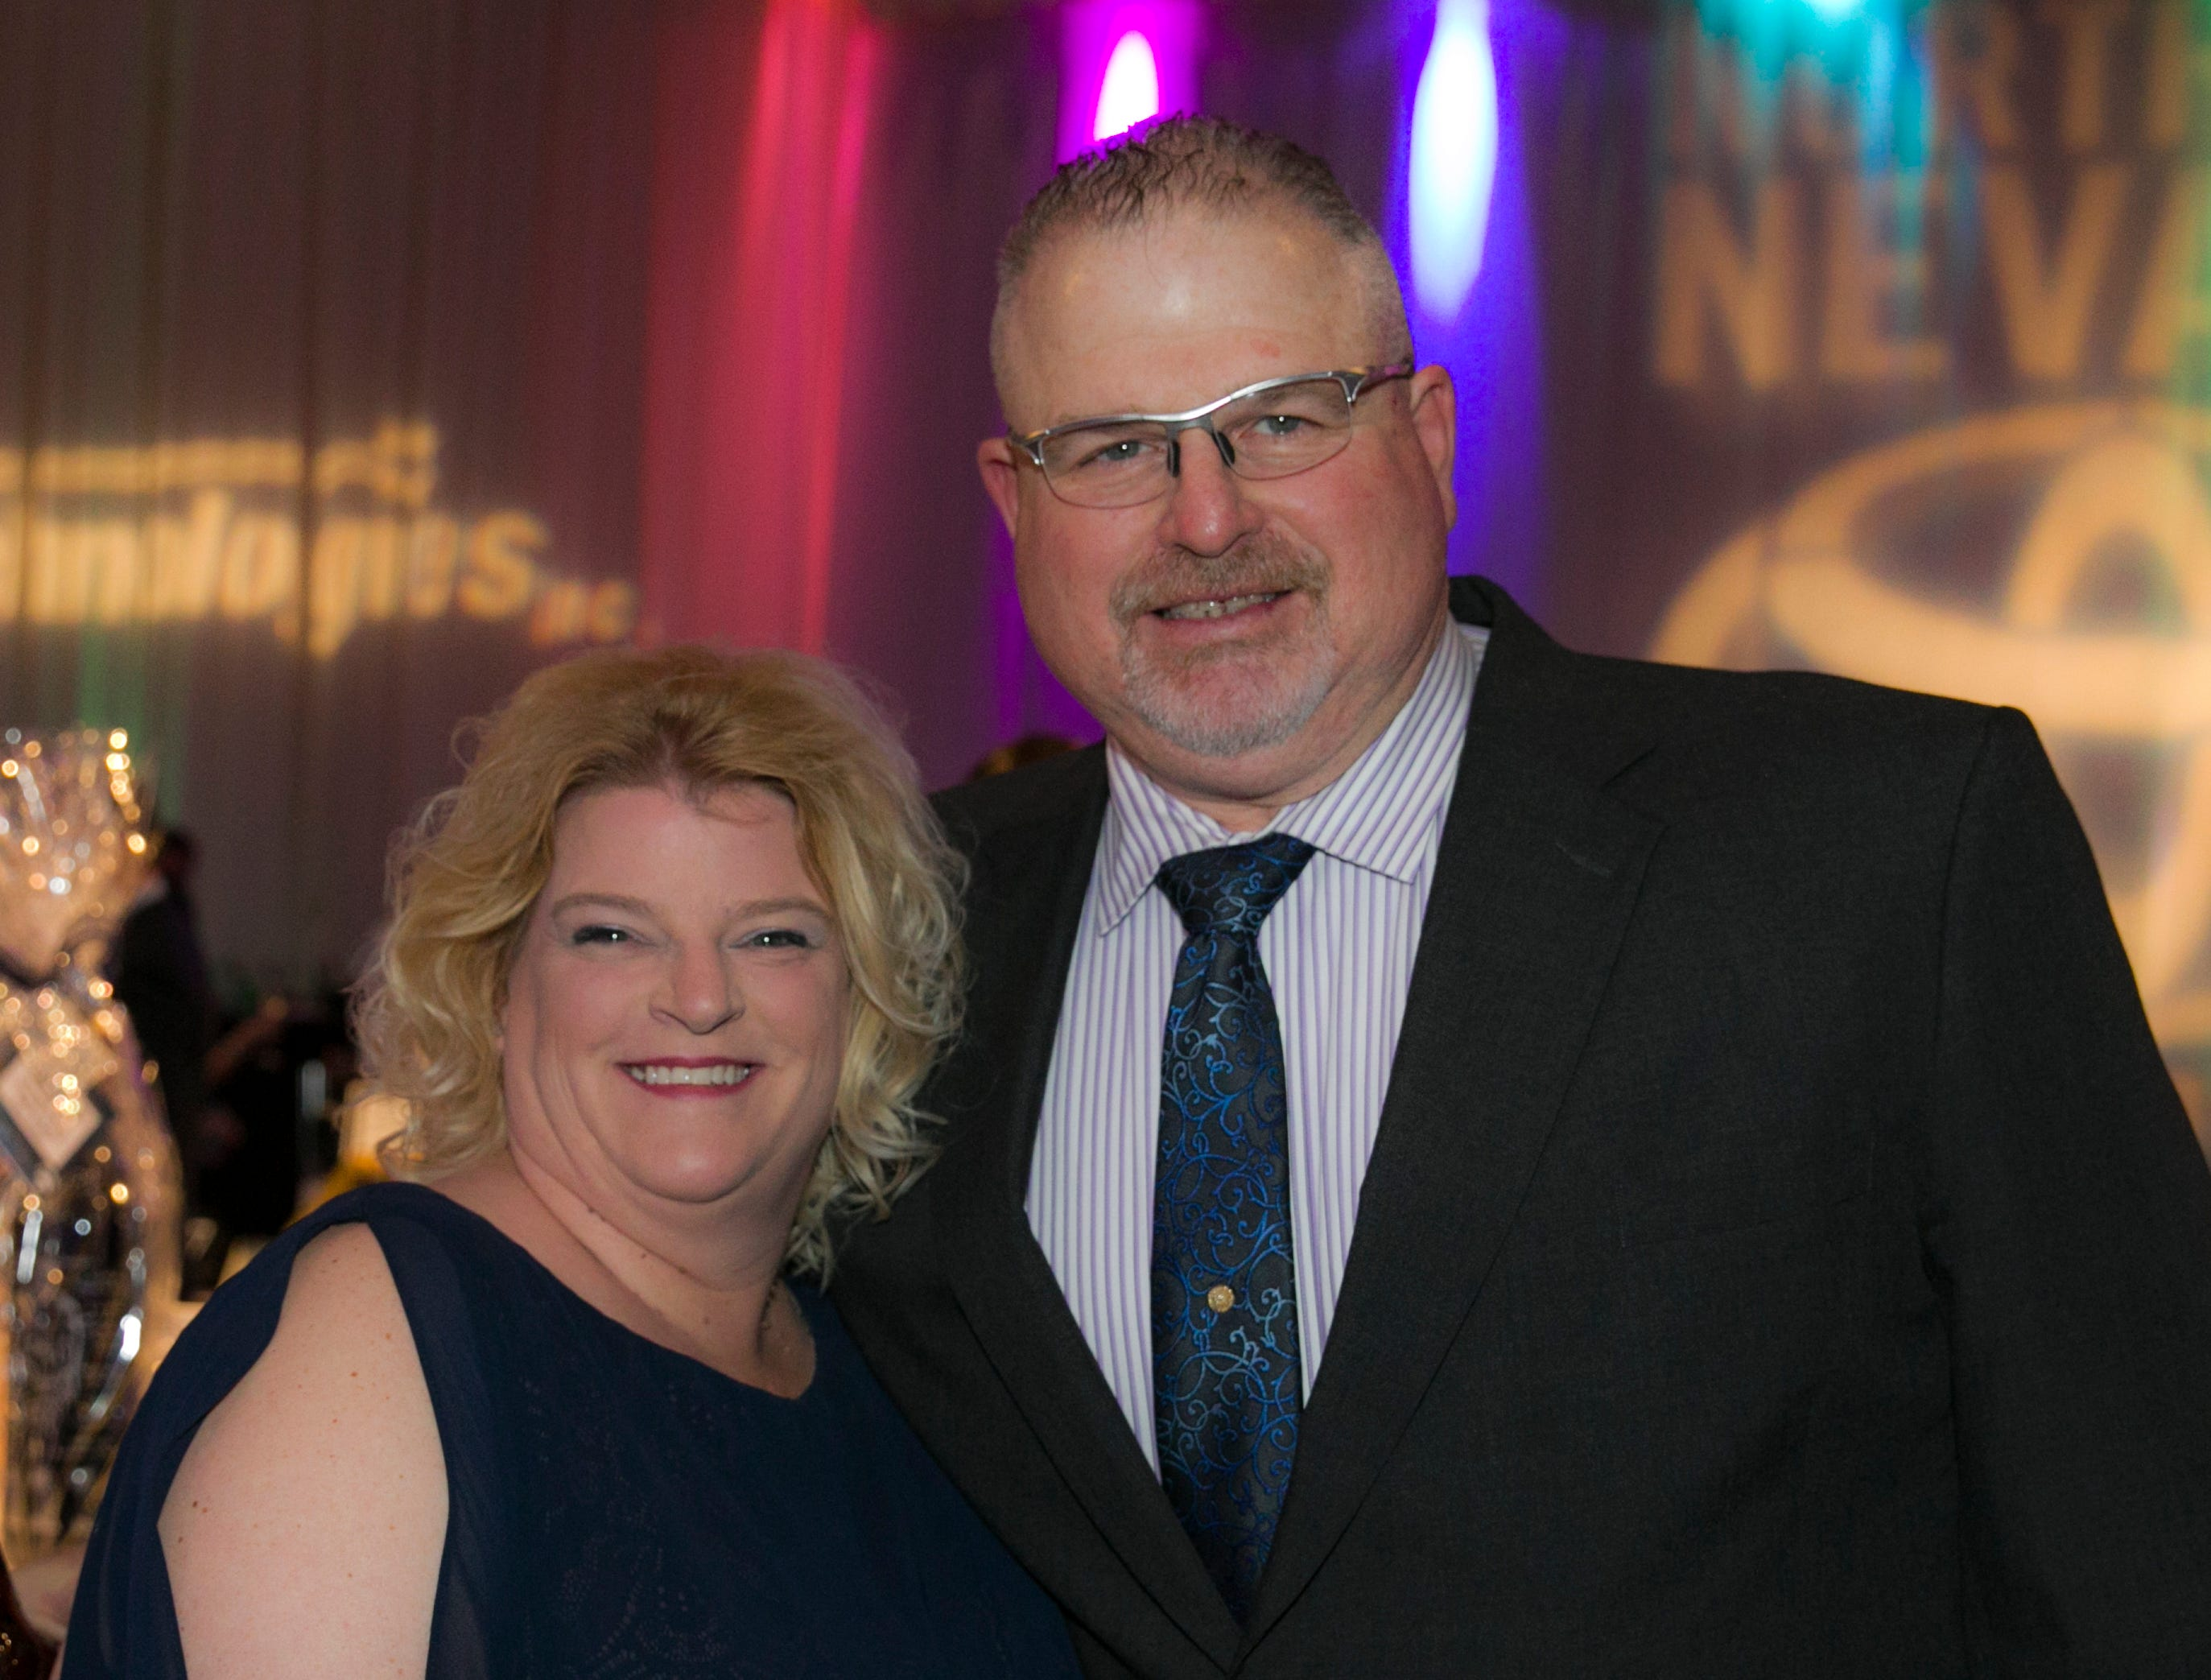 Photos from the Blue Tie Ball on Feb. 1, 2019